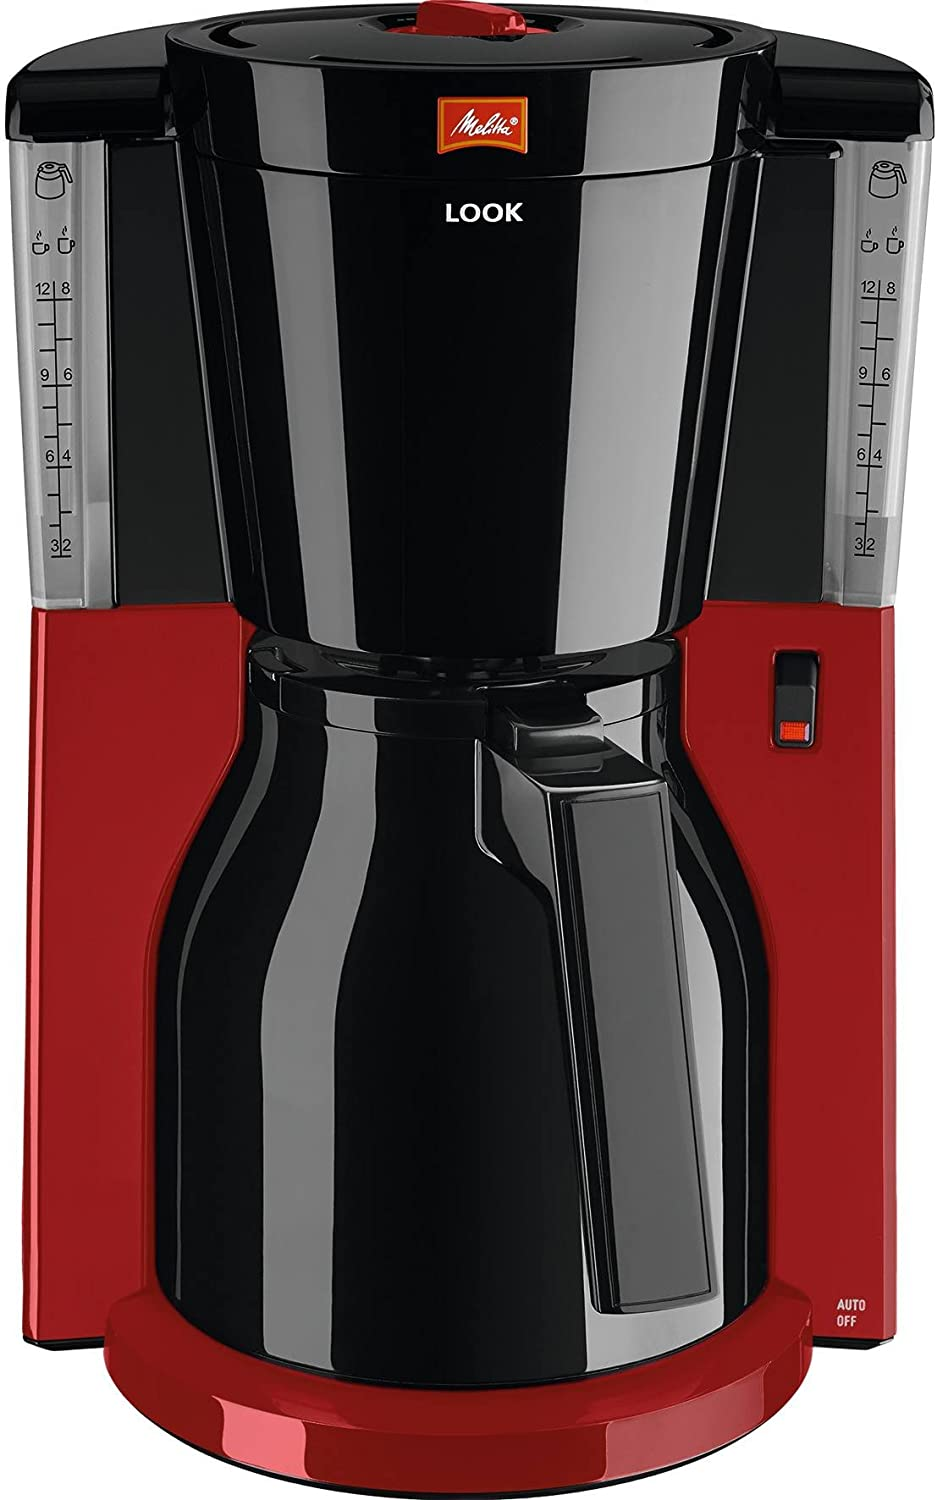 Melitta 1011 Look IV Therm Coffee Filter Machine - Red 1011-20